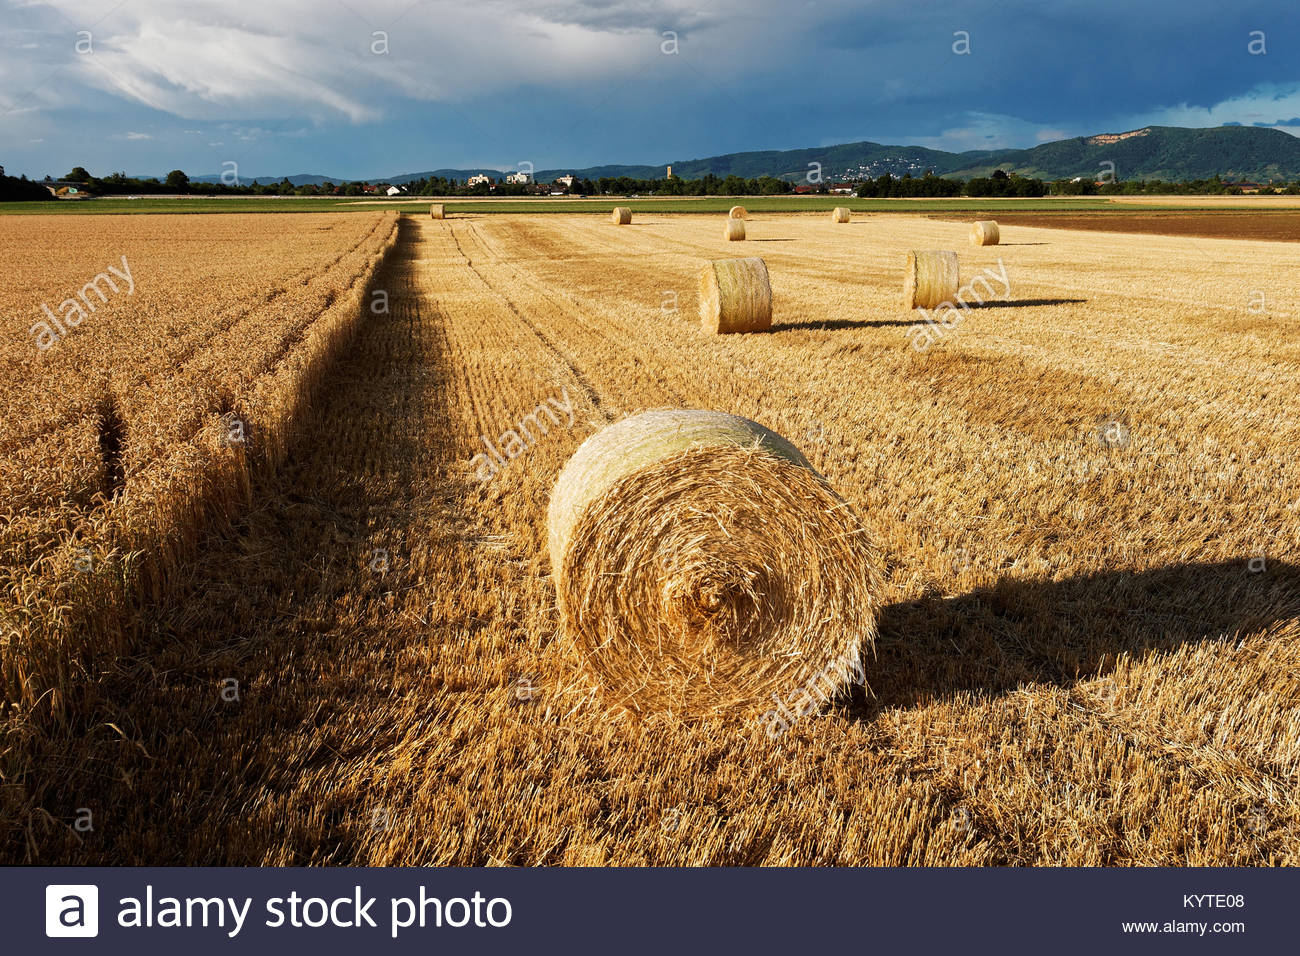 Hay Rolls On Harvested Field In Friedrichsfeld Sud Mannheim Stock